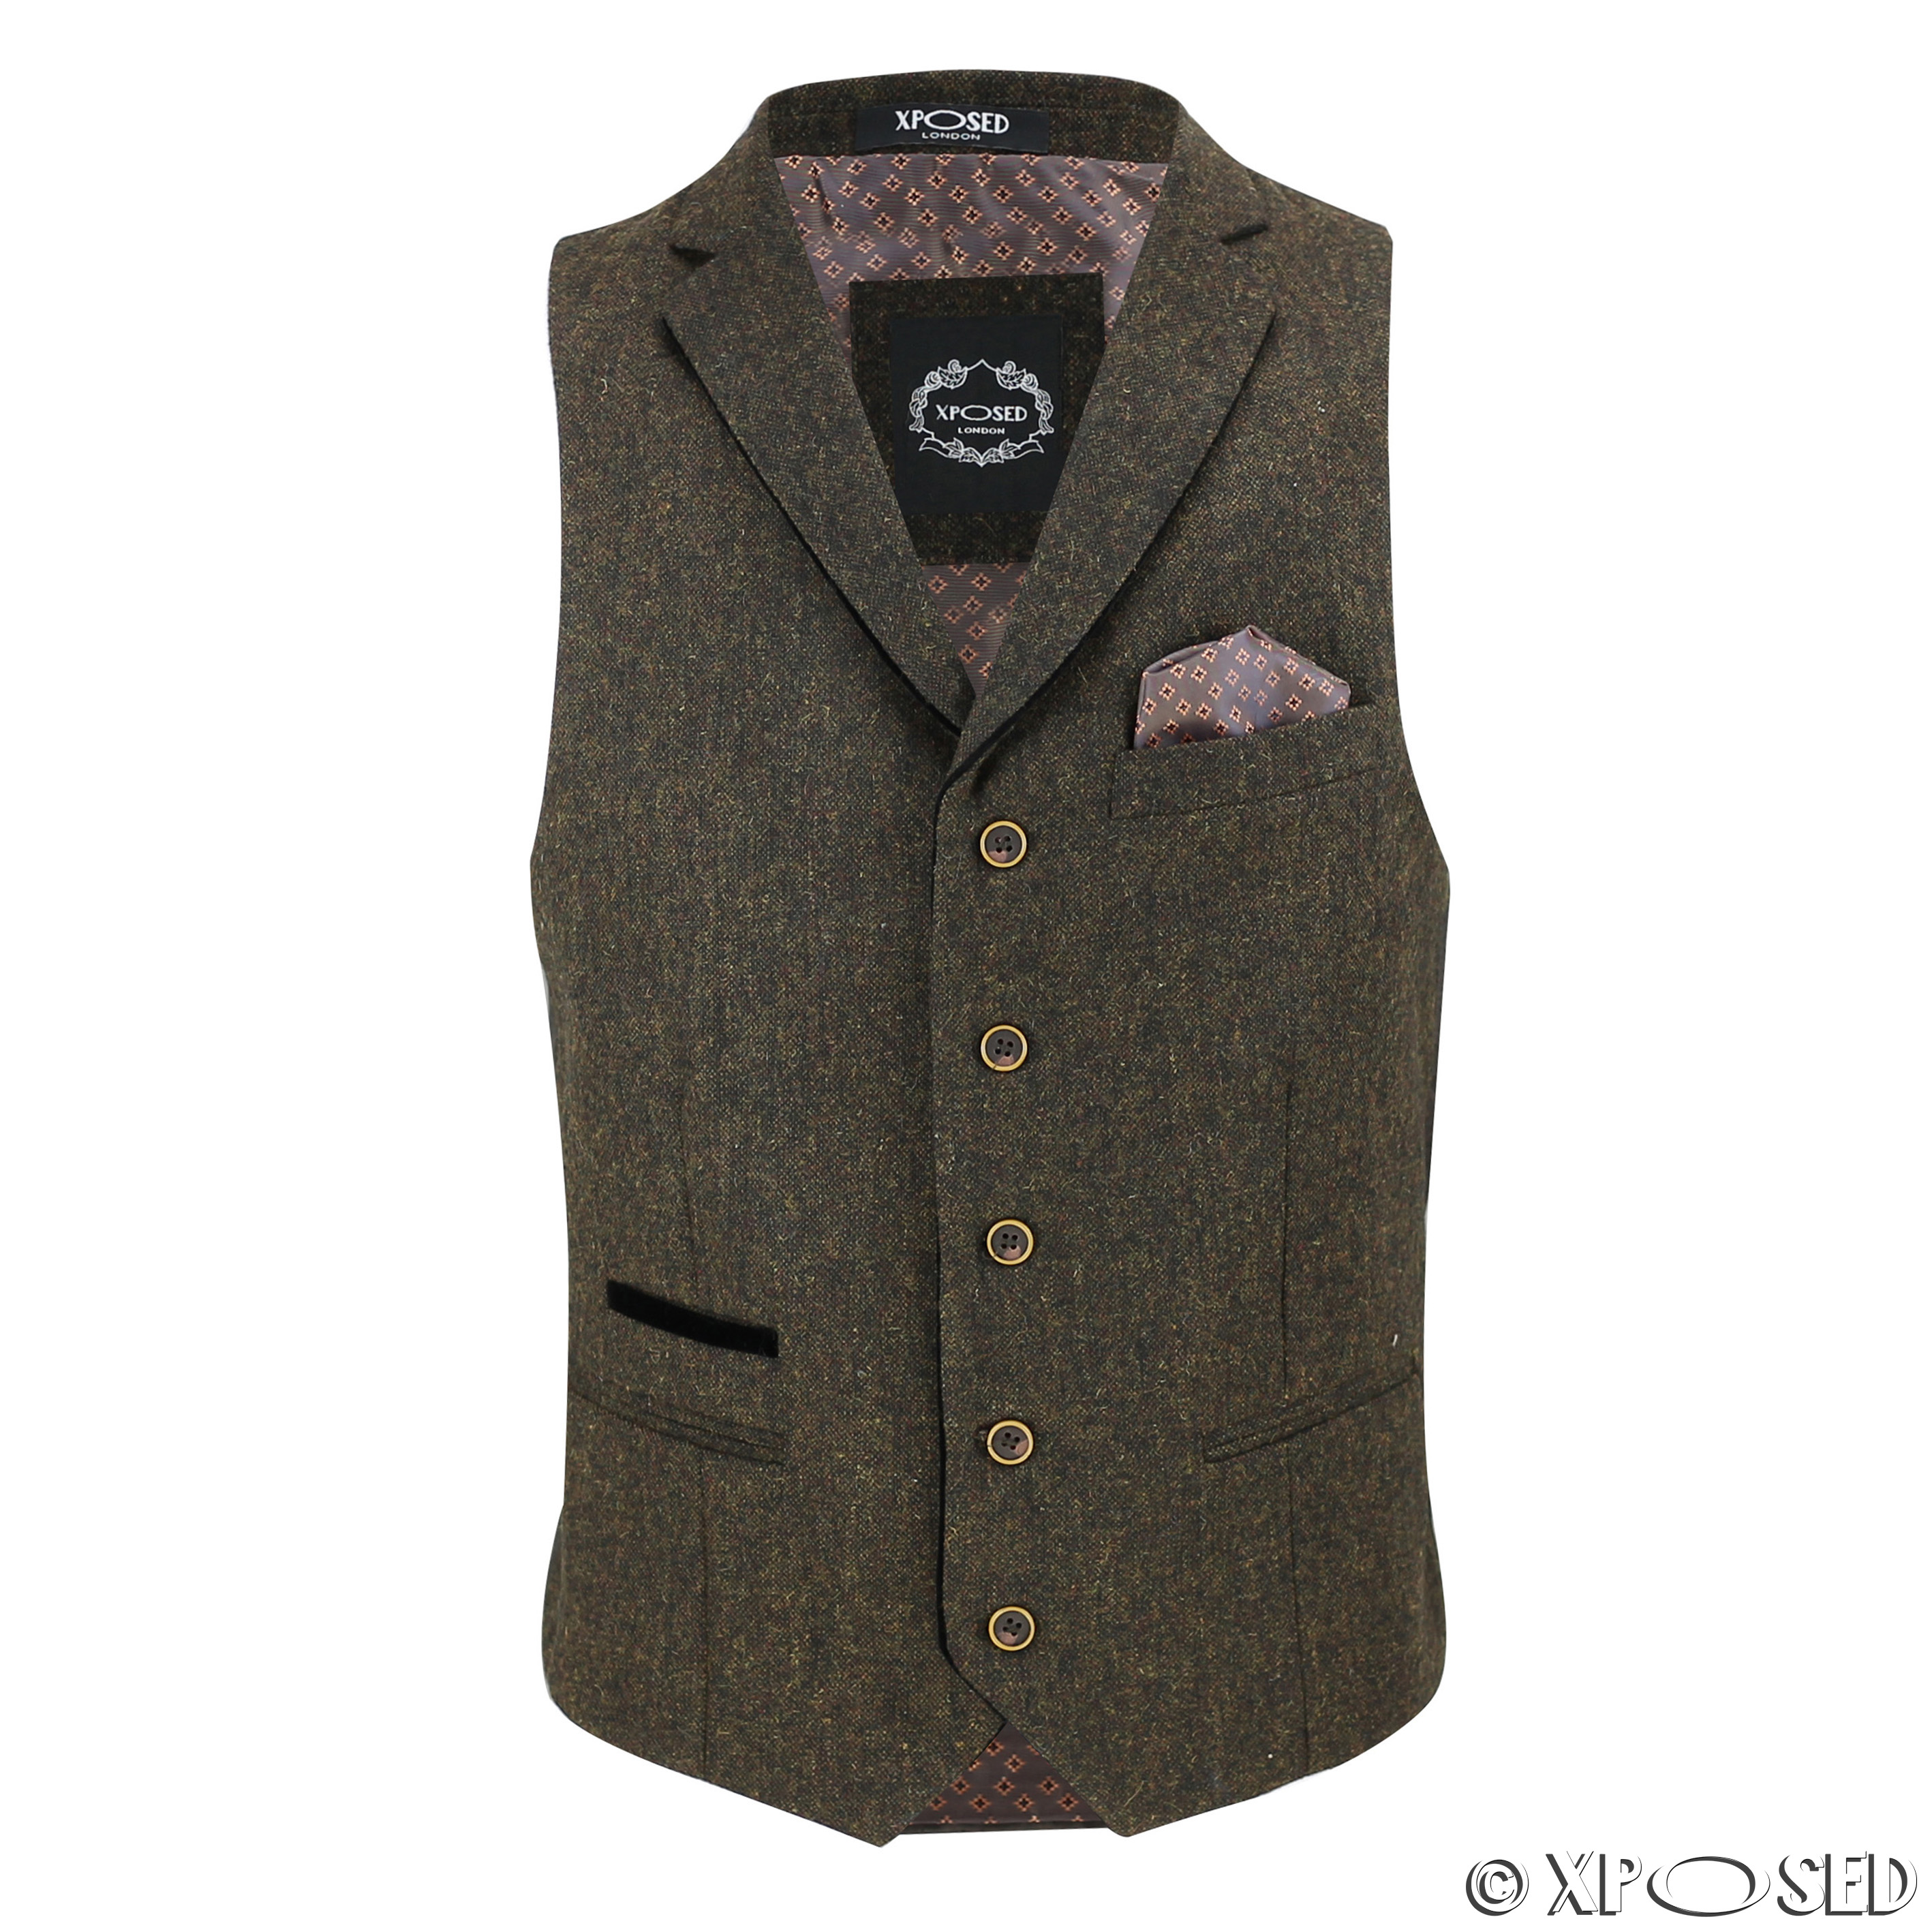 a7d3fca7afc Details about New Mens Wool Mix Herringbone Tweed Vintage Collar Waistcoat  Tailored Fit Vest